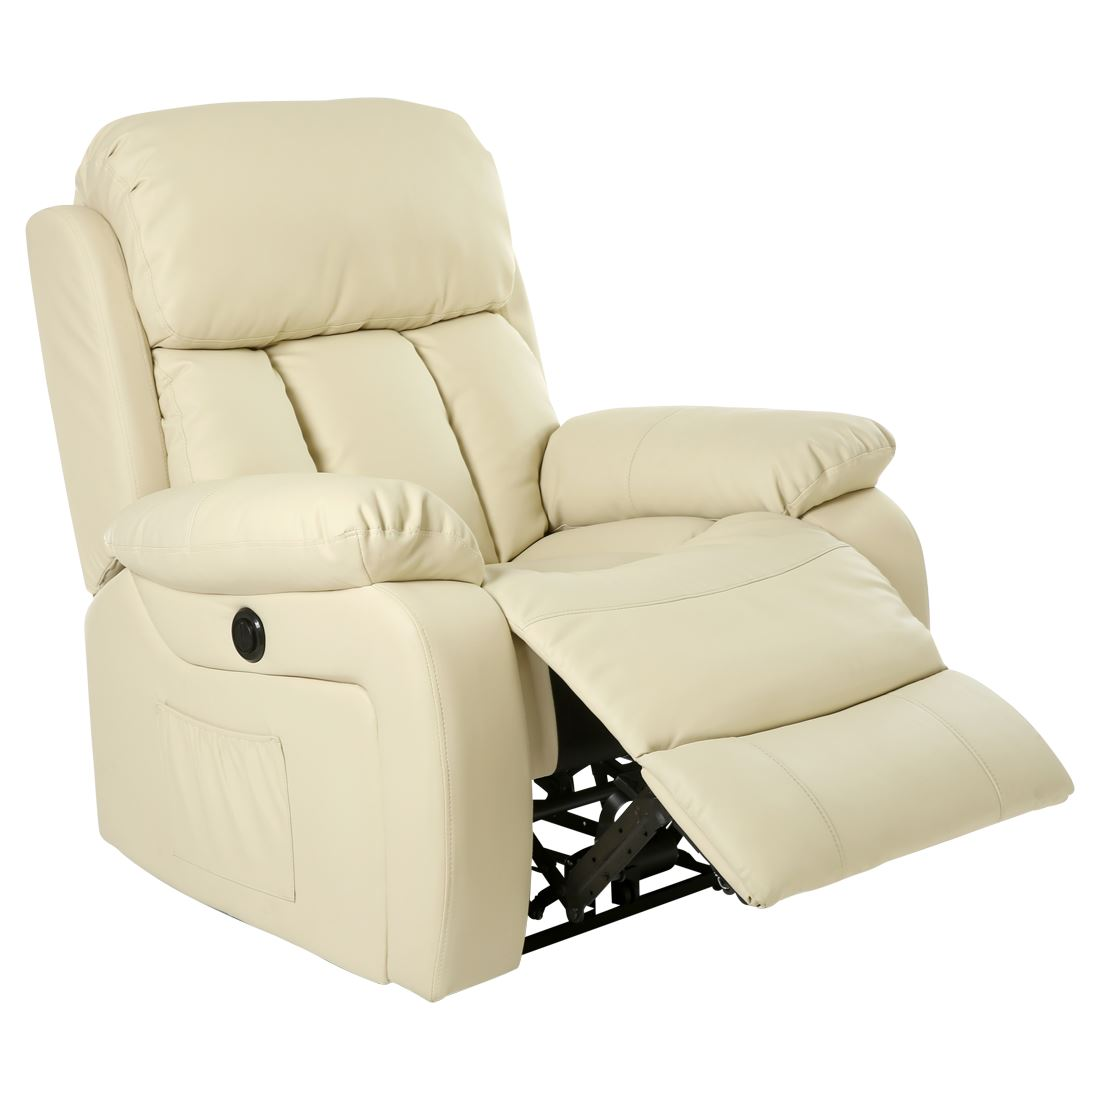 recliner warranty power bear stallworth ritas sale related extra wide fabric pride lie burns dual stores of dsc magnum chair recliners catnapper cheap leather lift covered couch repair full ez covers medicare lay oliver furniture by reclining post reviews flat chairs teddy poweredsofas size best